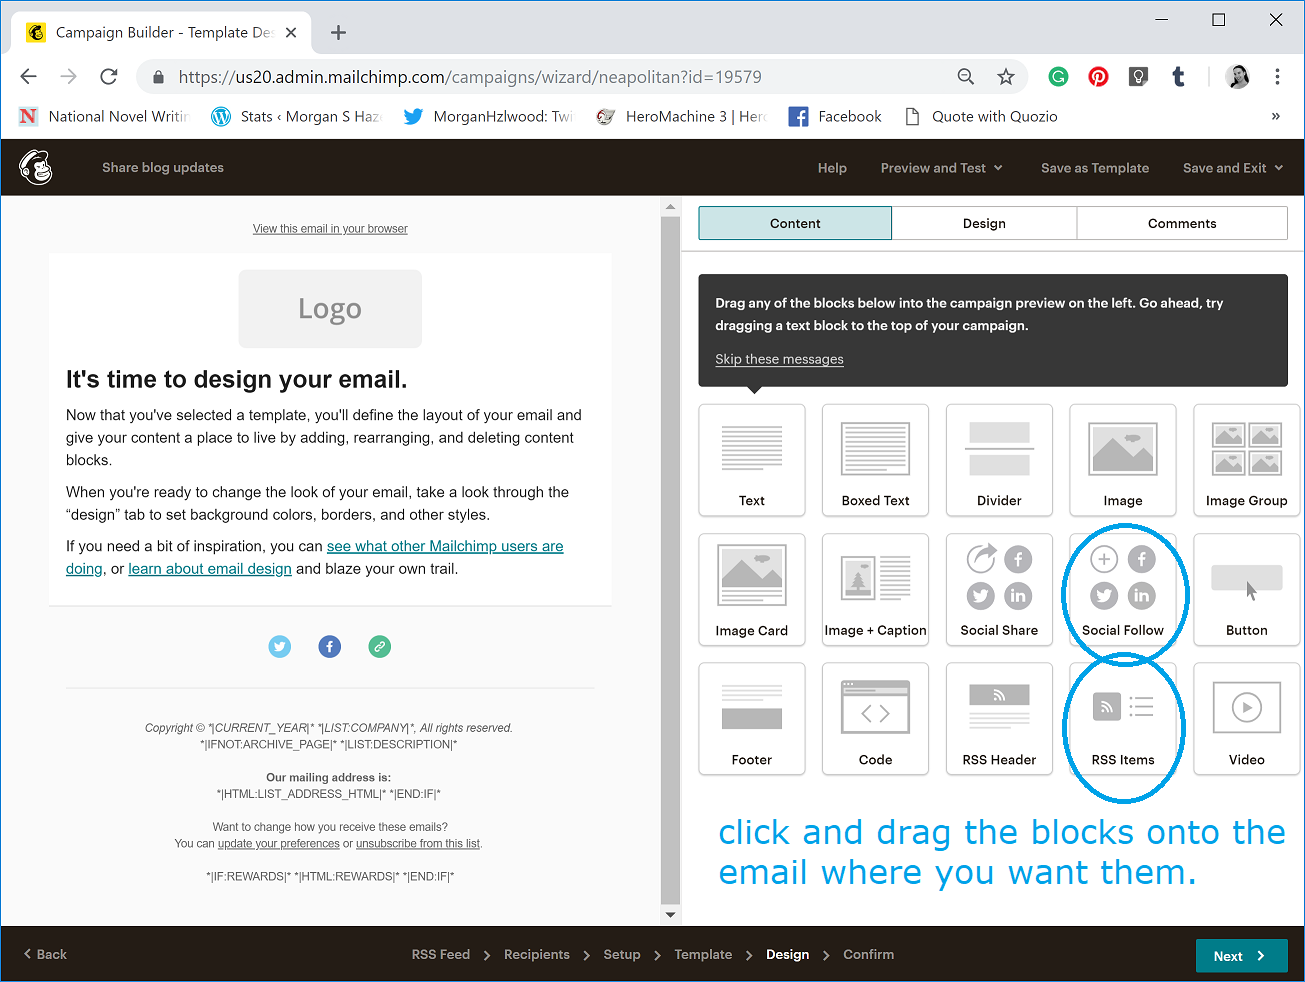 For this example, I dragged the 'RSS Items' content block onto the email preview and then 'Social Share' (whoops, image has the wrong one circled), so people can easily share links to my blog if they liked the post. Put it in an order that makes sense to you.